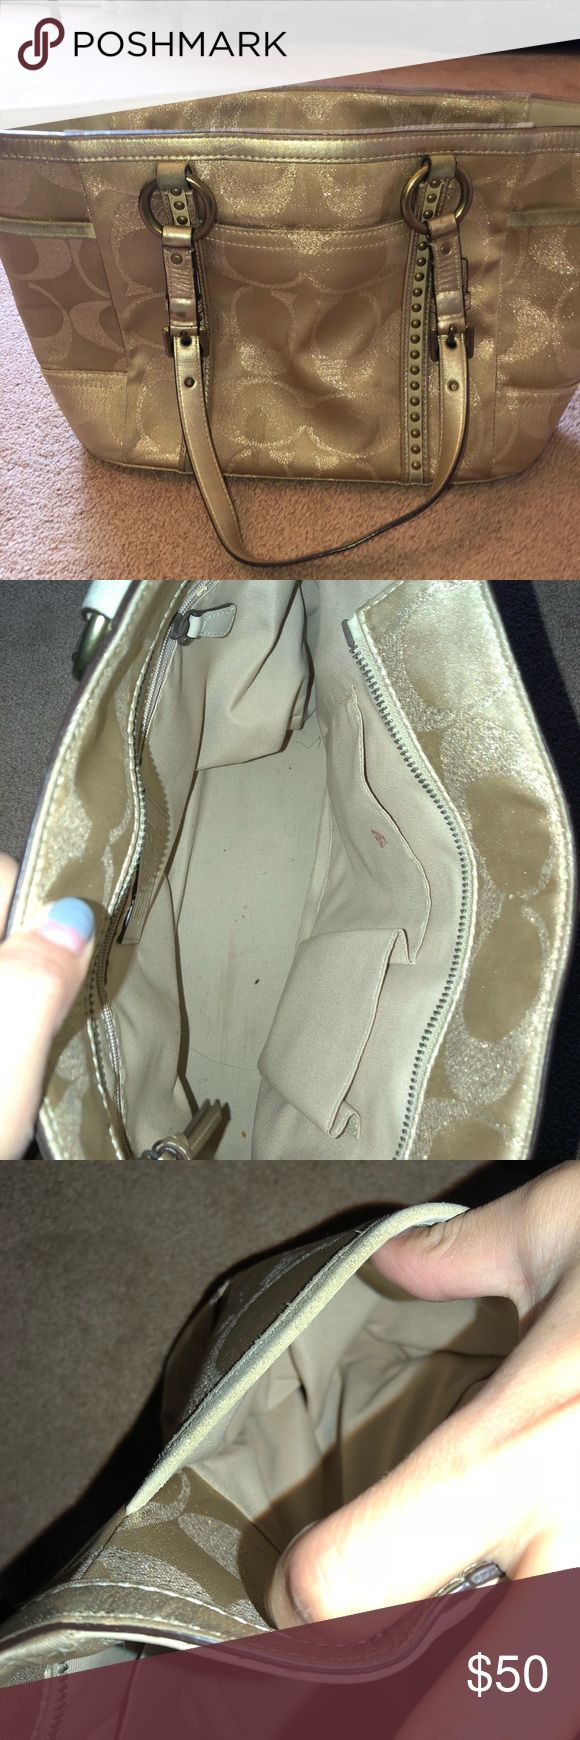 Gold coach pocketbook Good condition  Worn Leather straps look good Coach Bags Shoulder Bags